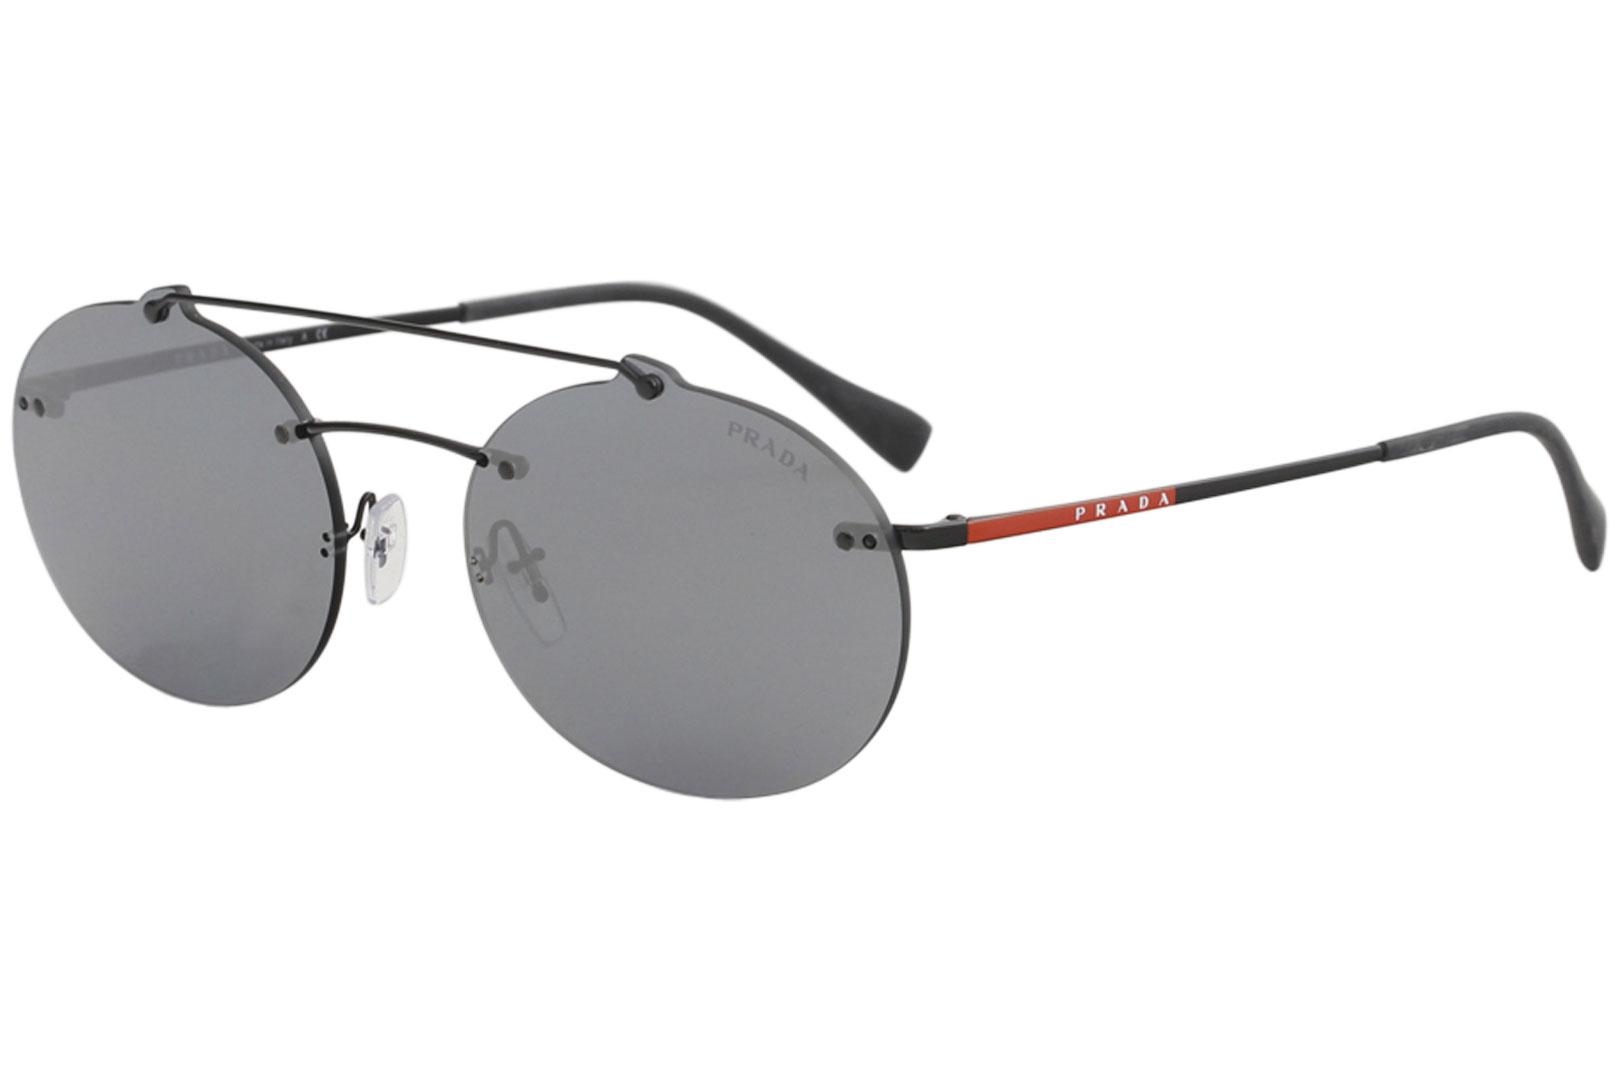 052b226d00c4 ... Men s SPS56T SPS 56T Fashion Oval Sunglasses by Prada Linea Rossa.  Touch to zoom